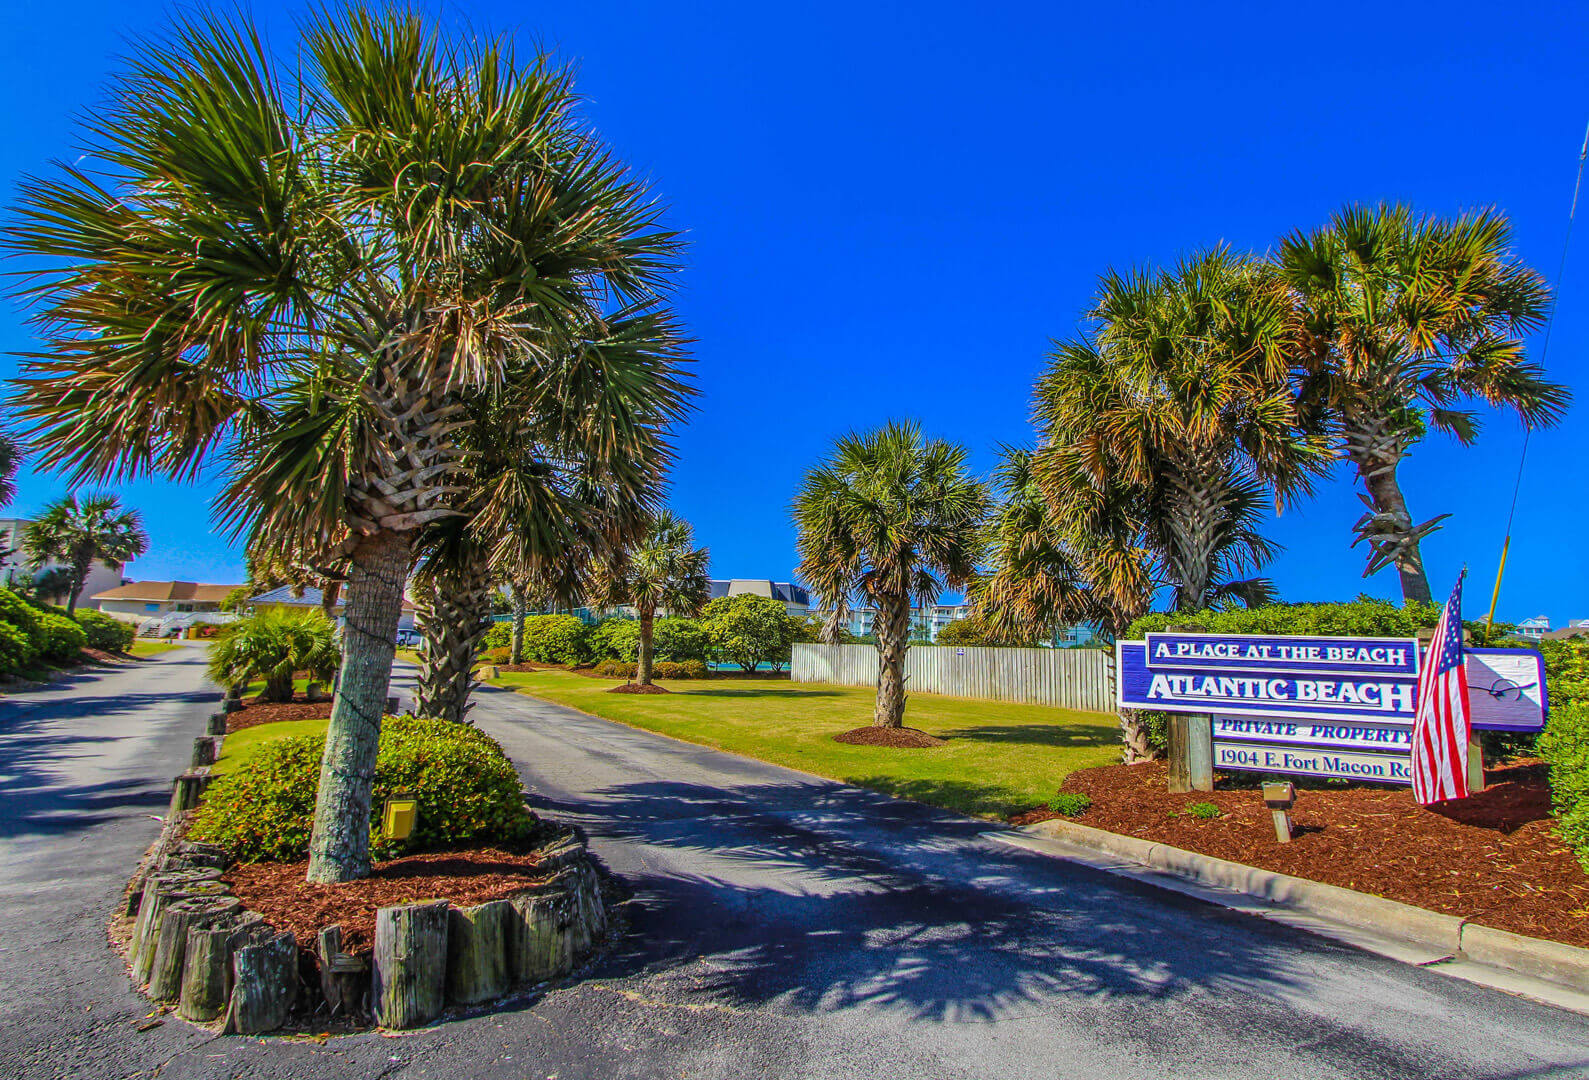 A Place At The Beach Resort Signage